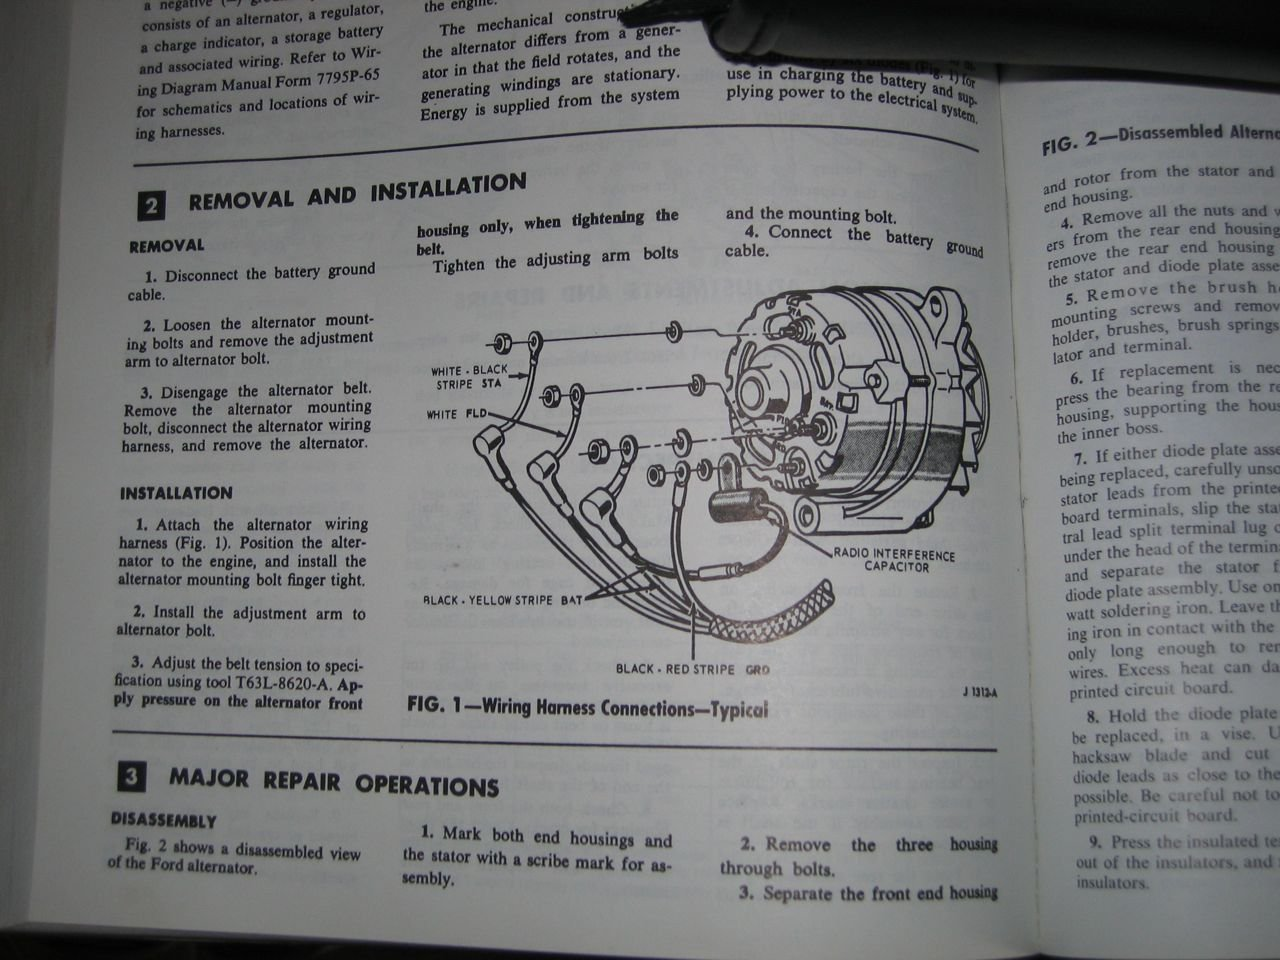 93328d1268767403 1966 mustang alternator wiring img_0749 1966 mustang alternator wiring ford mustang forum 65 mustang alternator wiring diagram at n-0.co